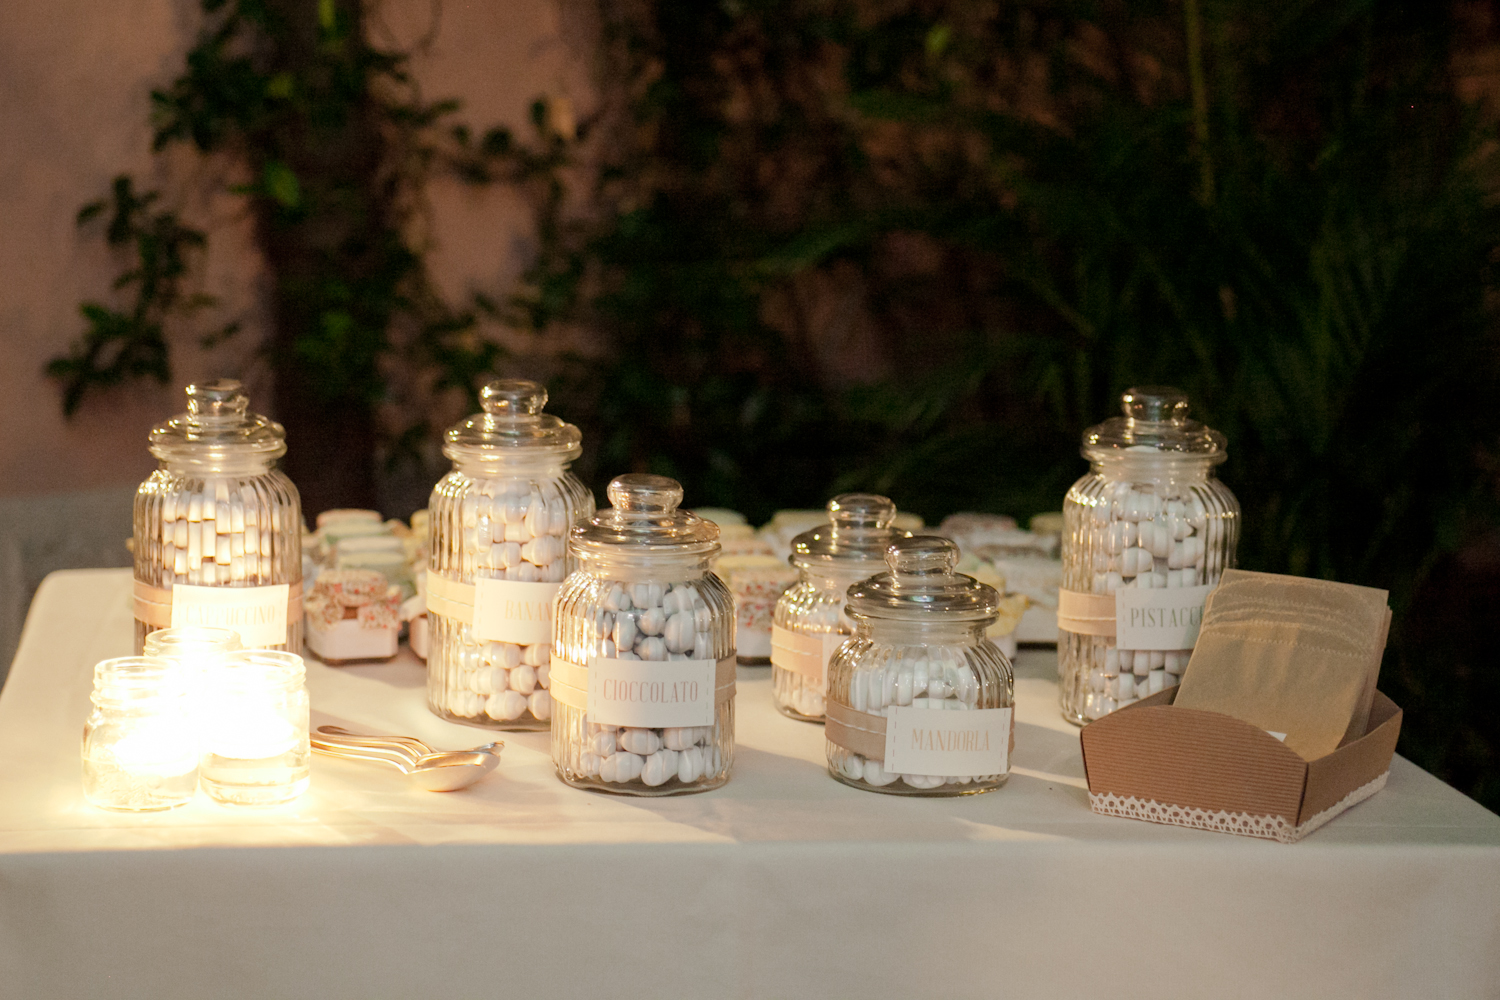 laura bravi events - wedding in italy